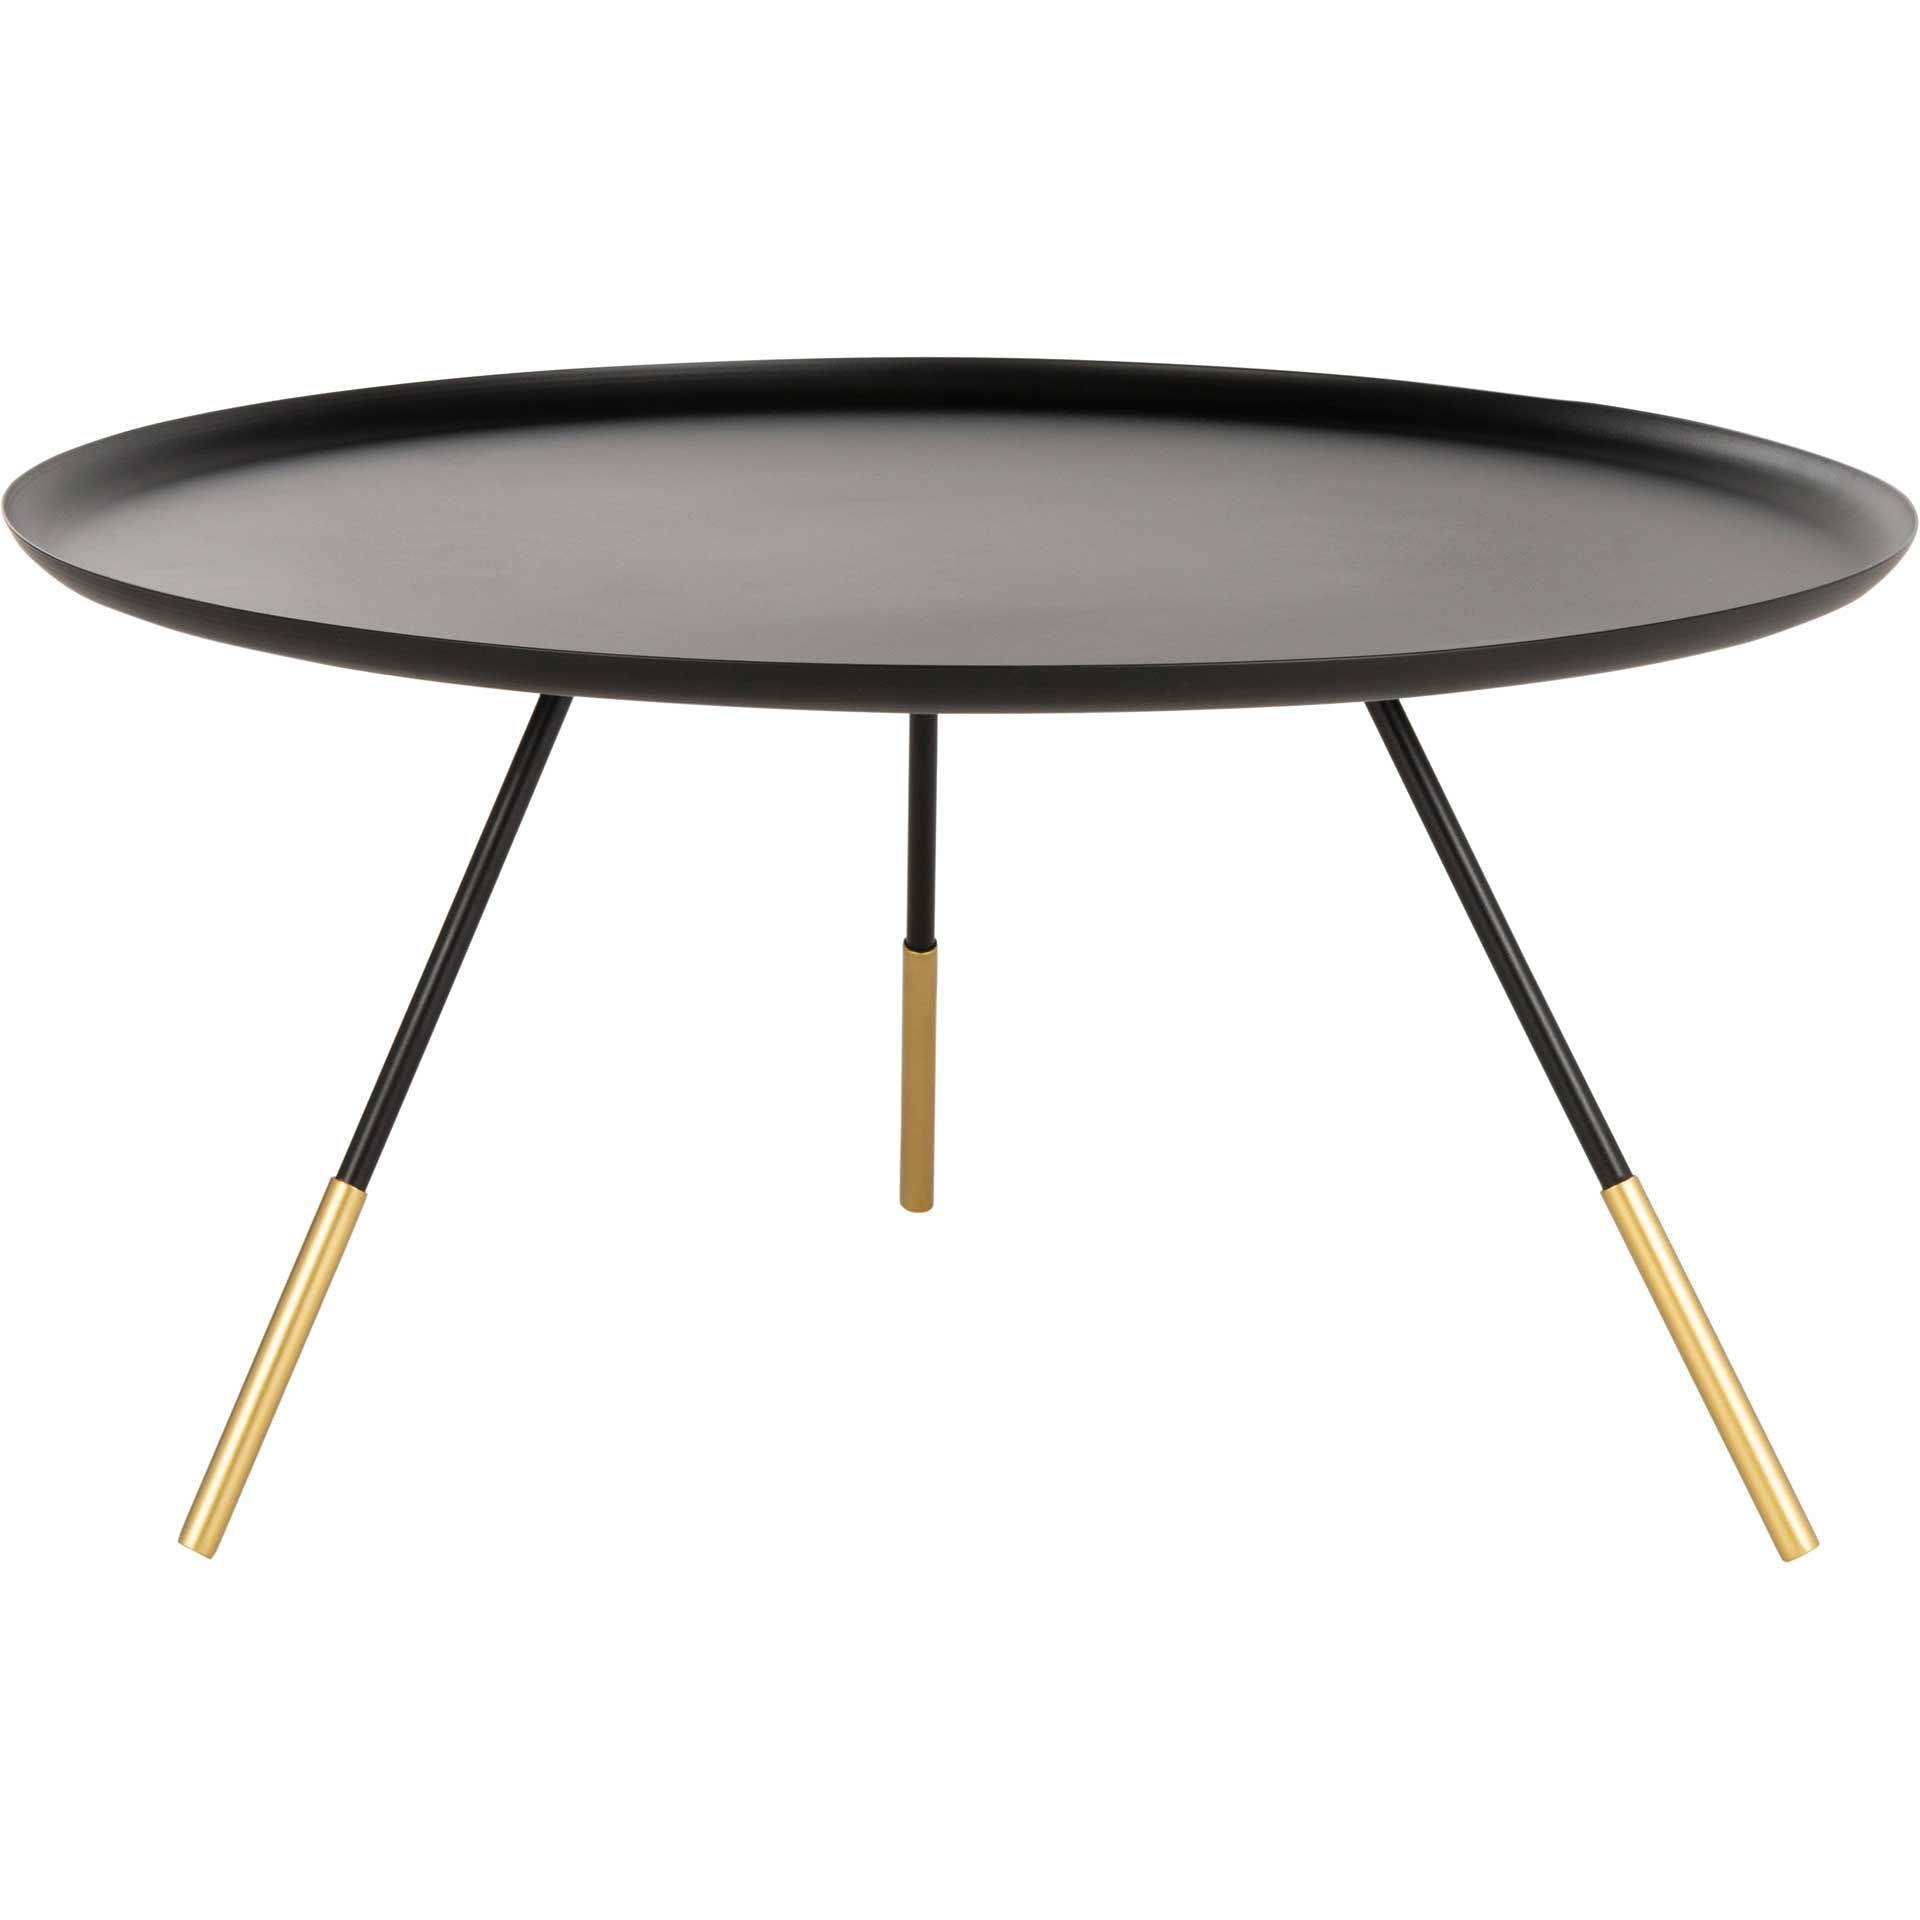 Orabella Coffee Table Black/Gold